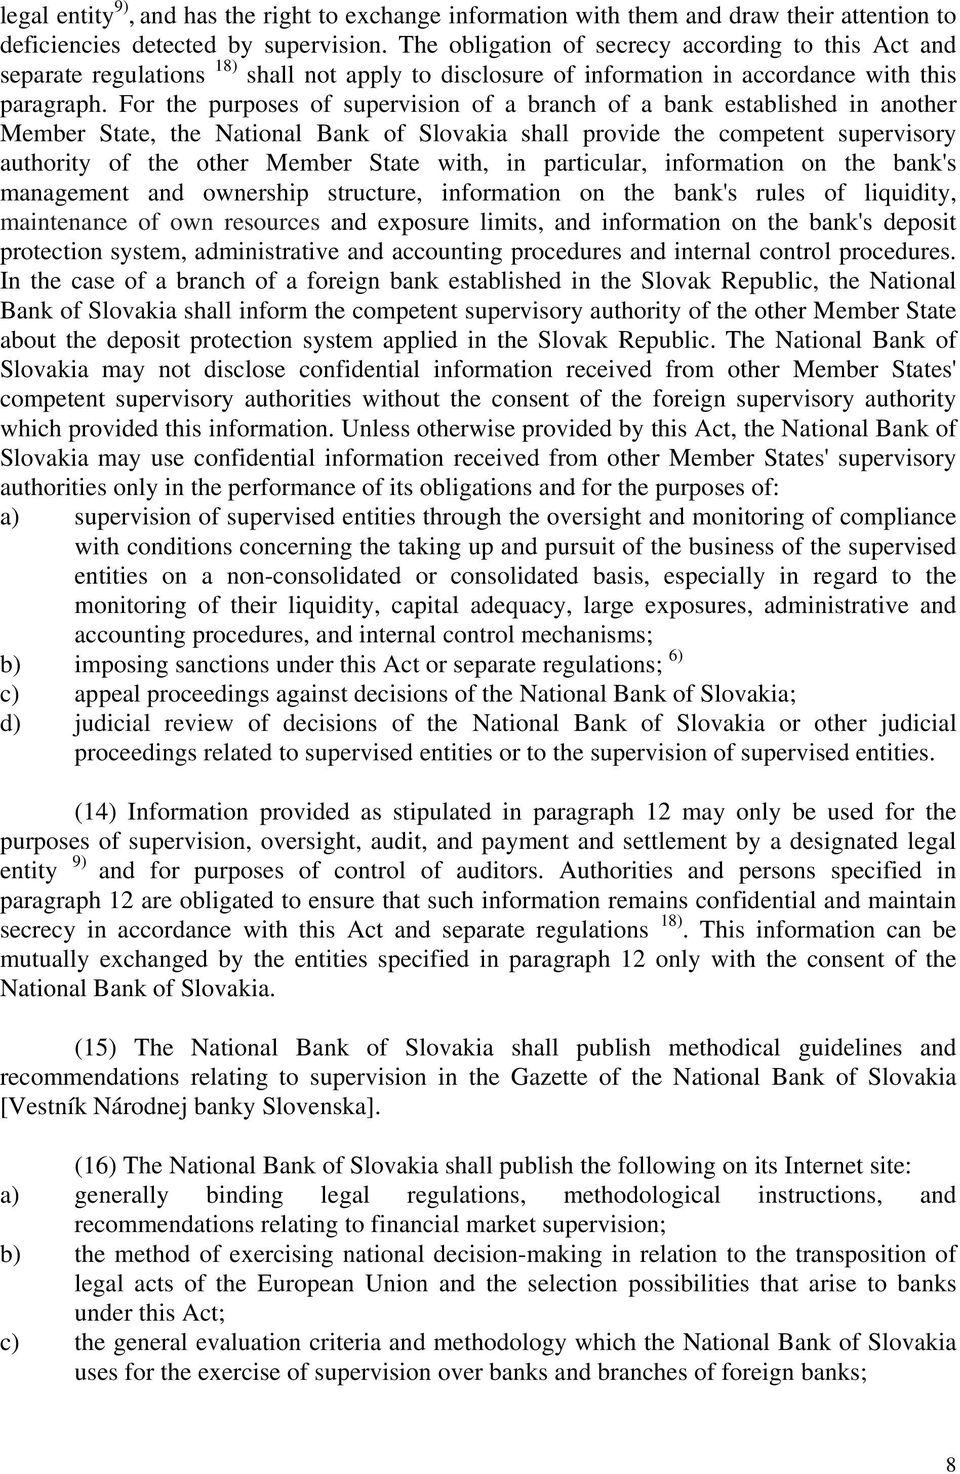 For the purposes of supervision of a branch of a bank established in another Member State, the National Bank of Slovakia shall provide the competent supervisory authority of the other Member State